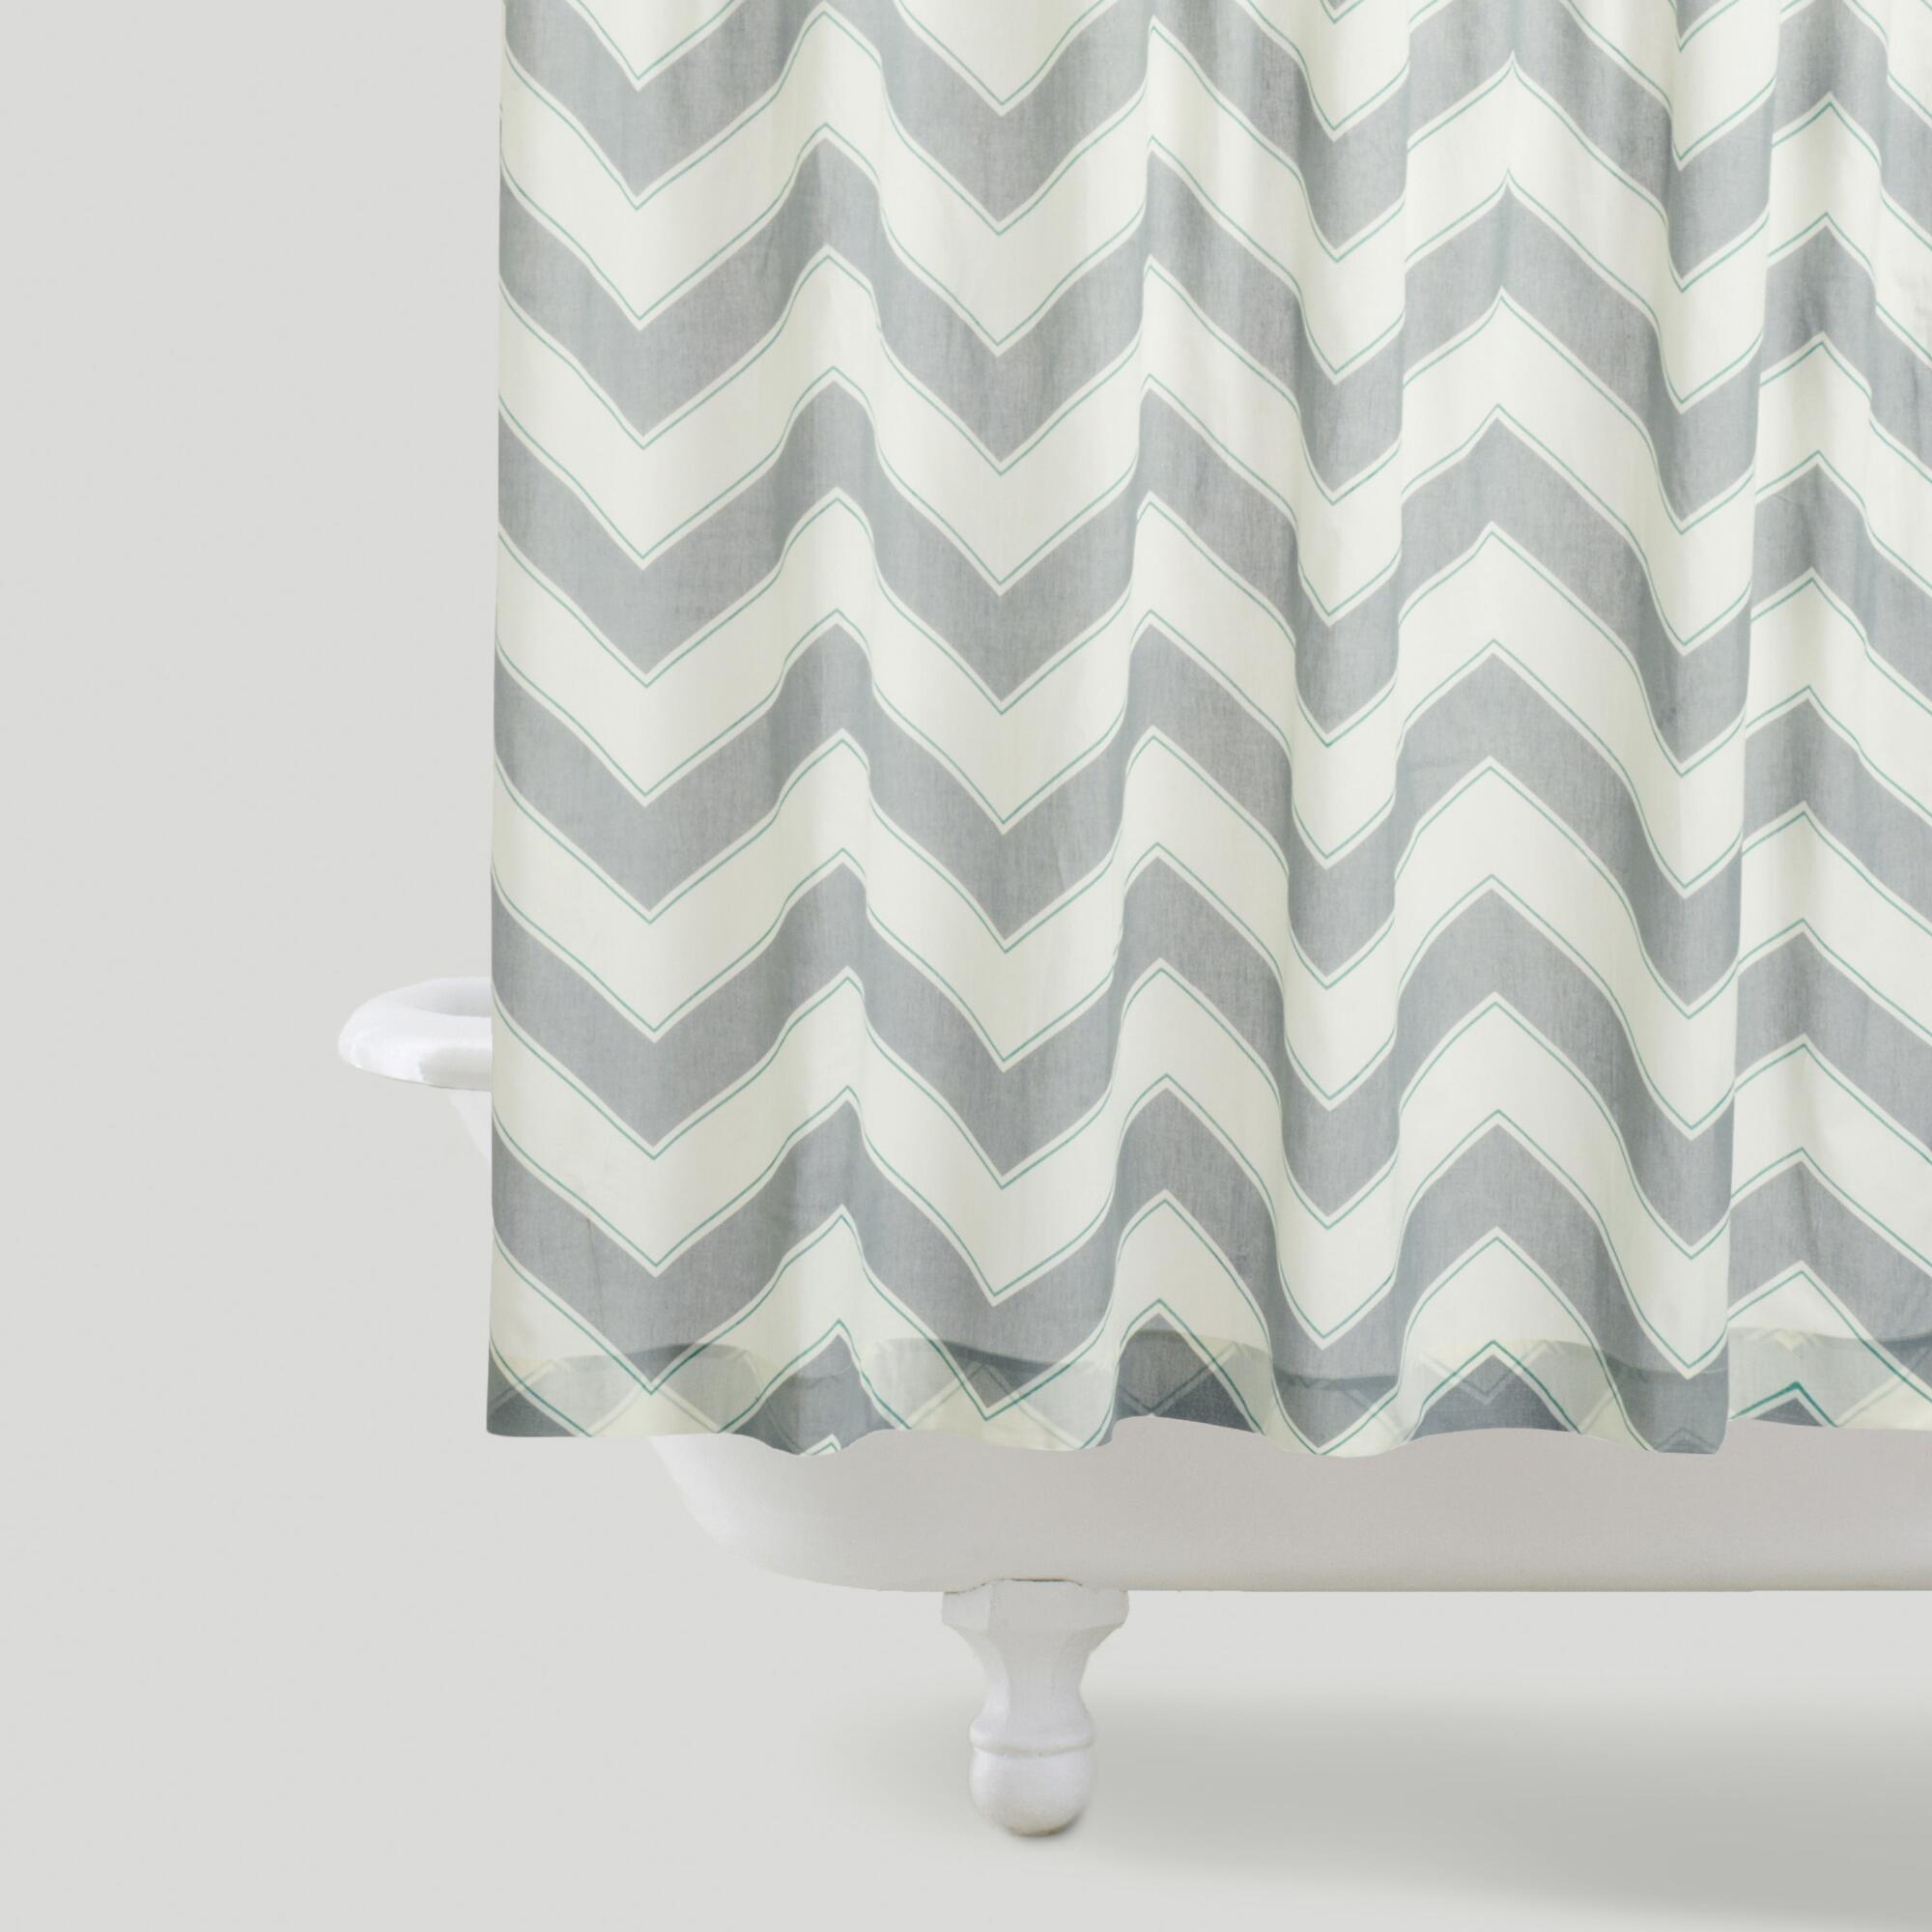 Bathroom Shower Curtains Great Ideas For Childrens Shower Within Gray Chevron Shower Curtains (Image 1 of 25)